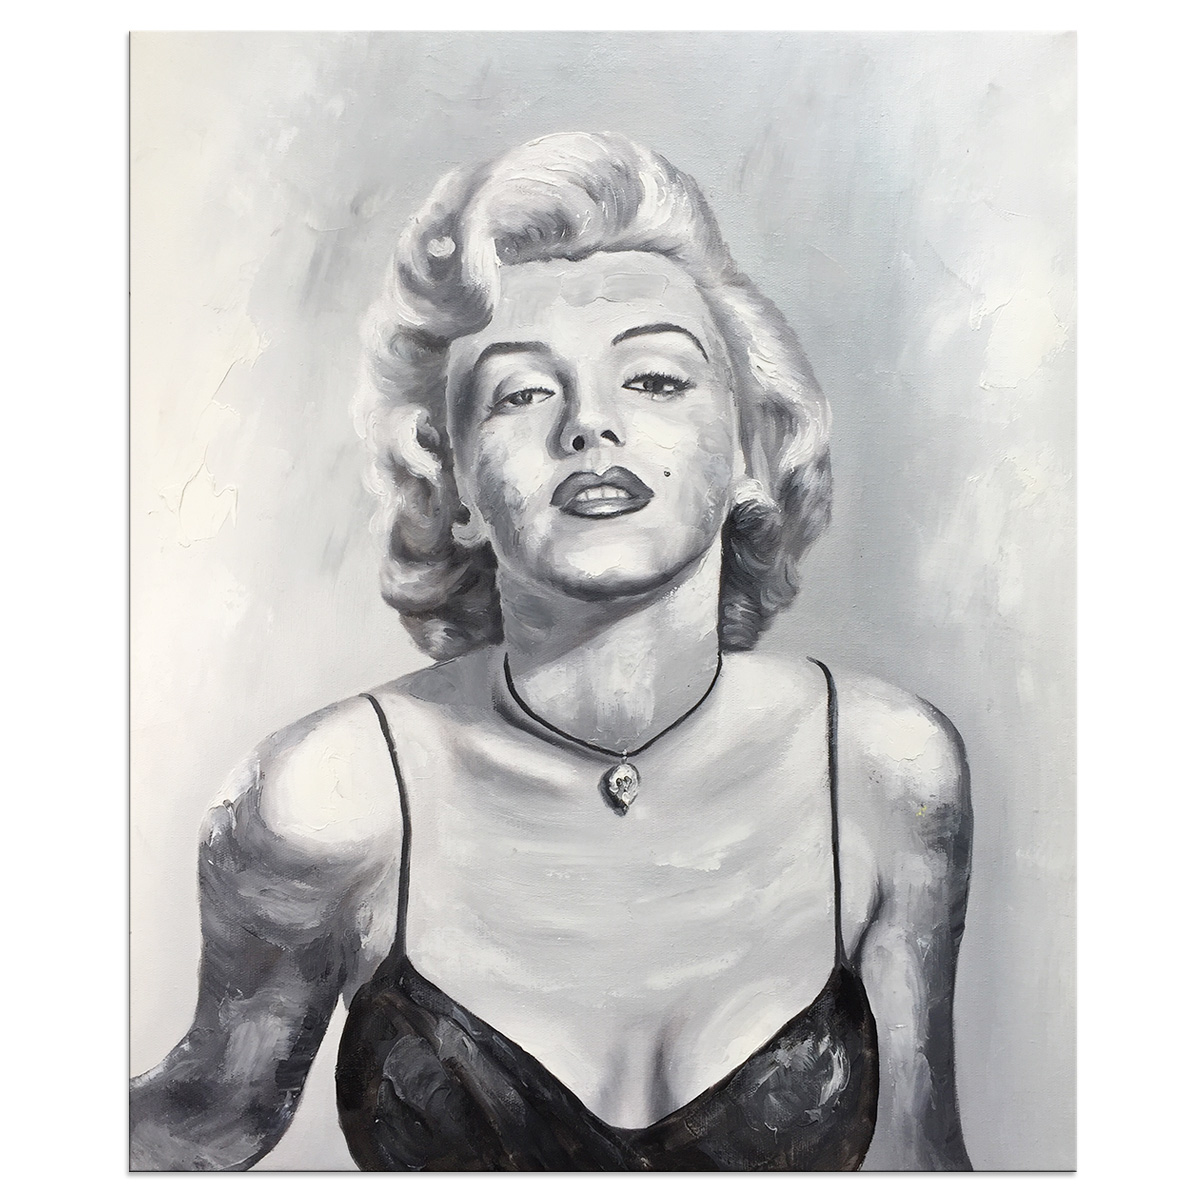 Oil Paintings Hand Painted on Canvas Wall Art Modern Contemporary Abstract Marilyn Monroe Artwork